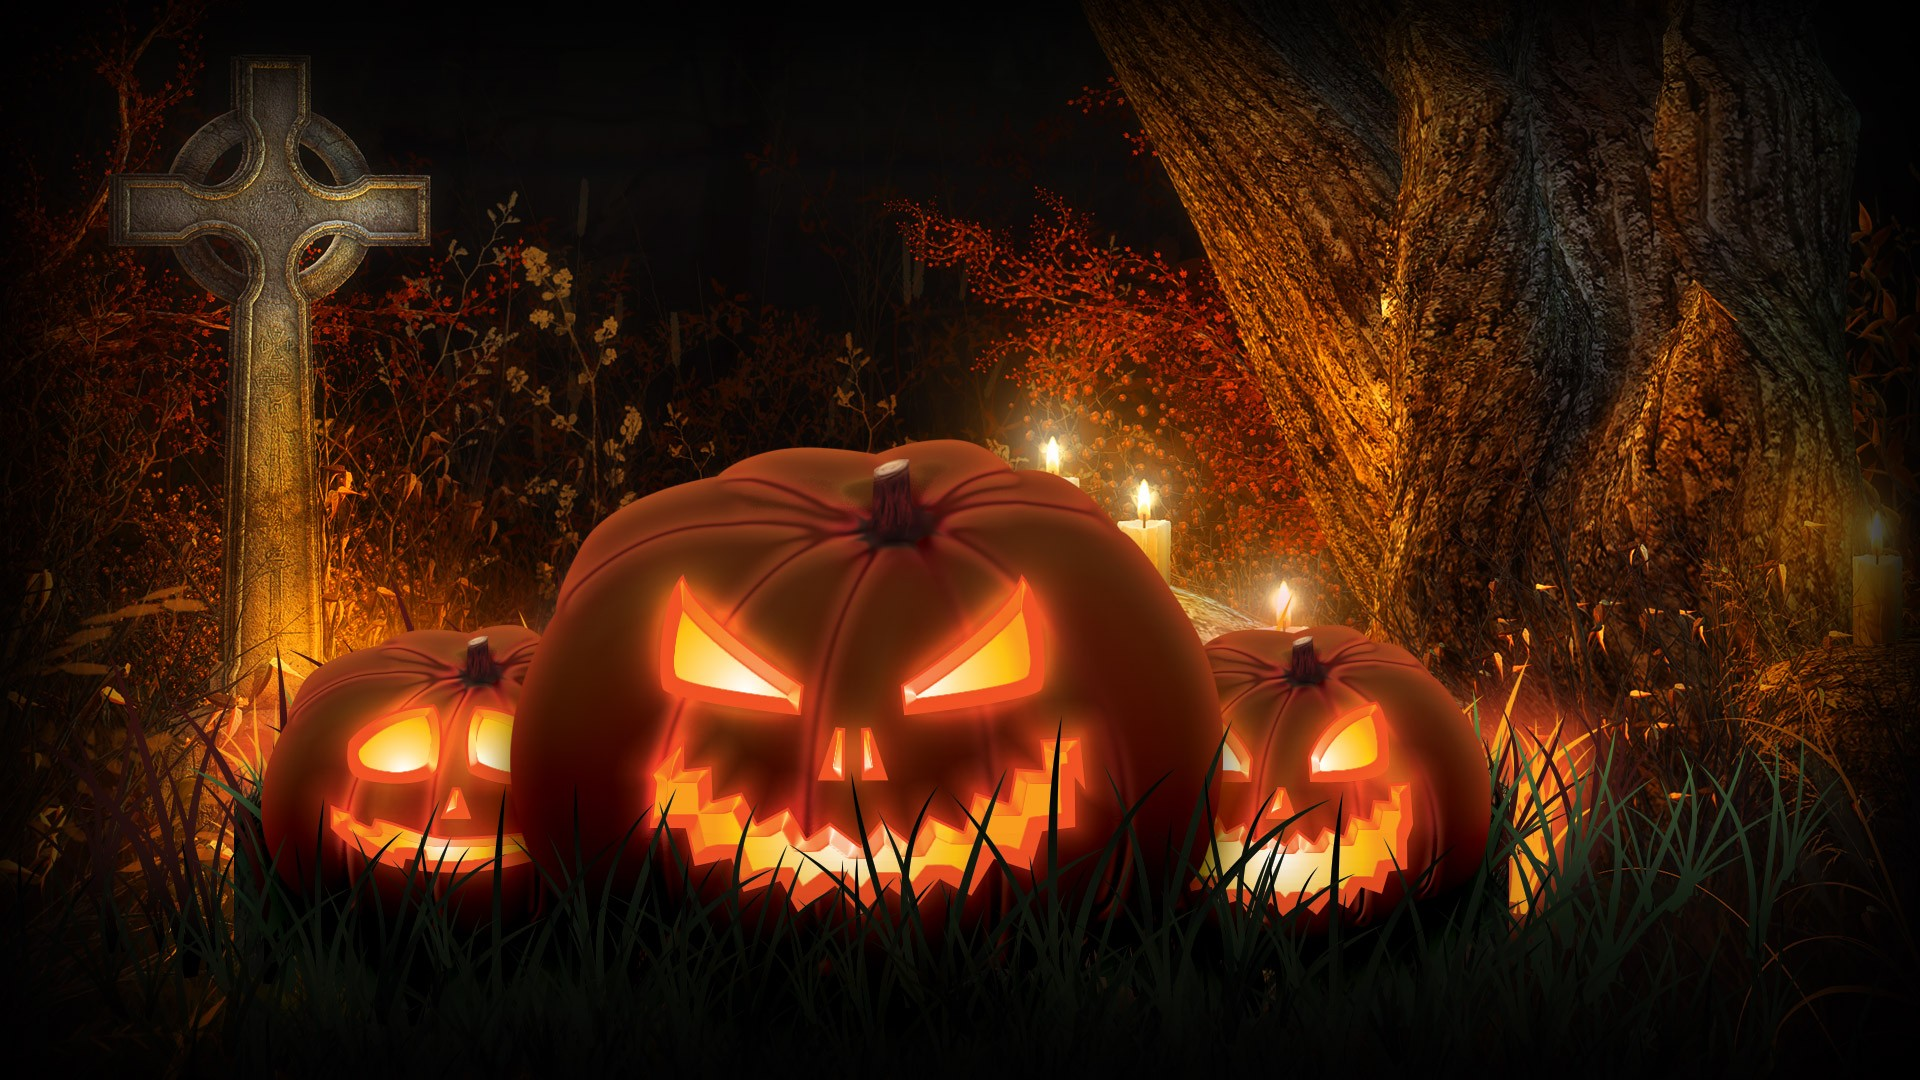 Scary Halloween Images HD Free